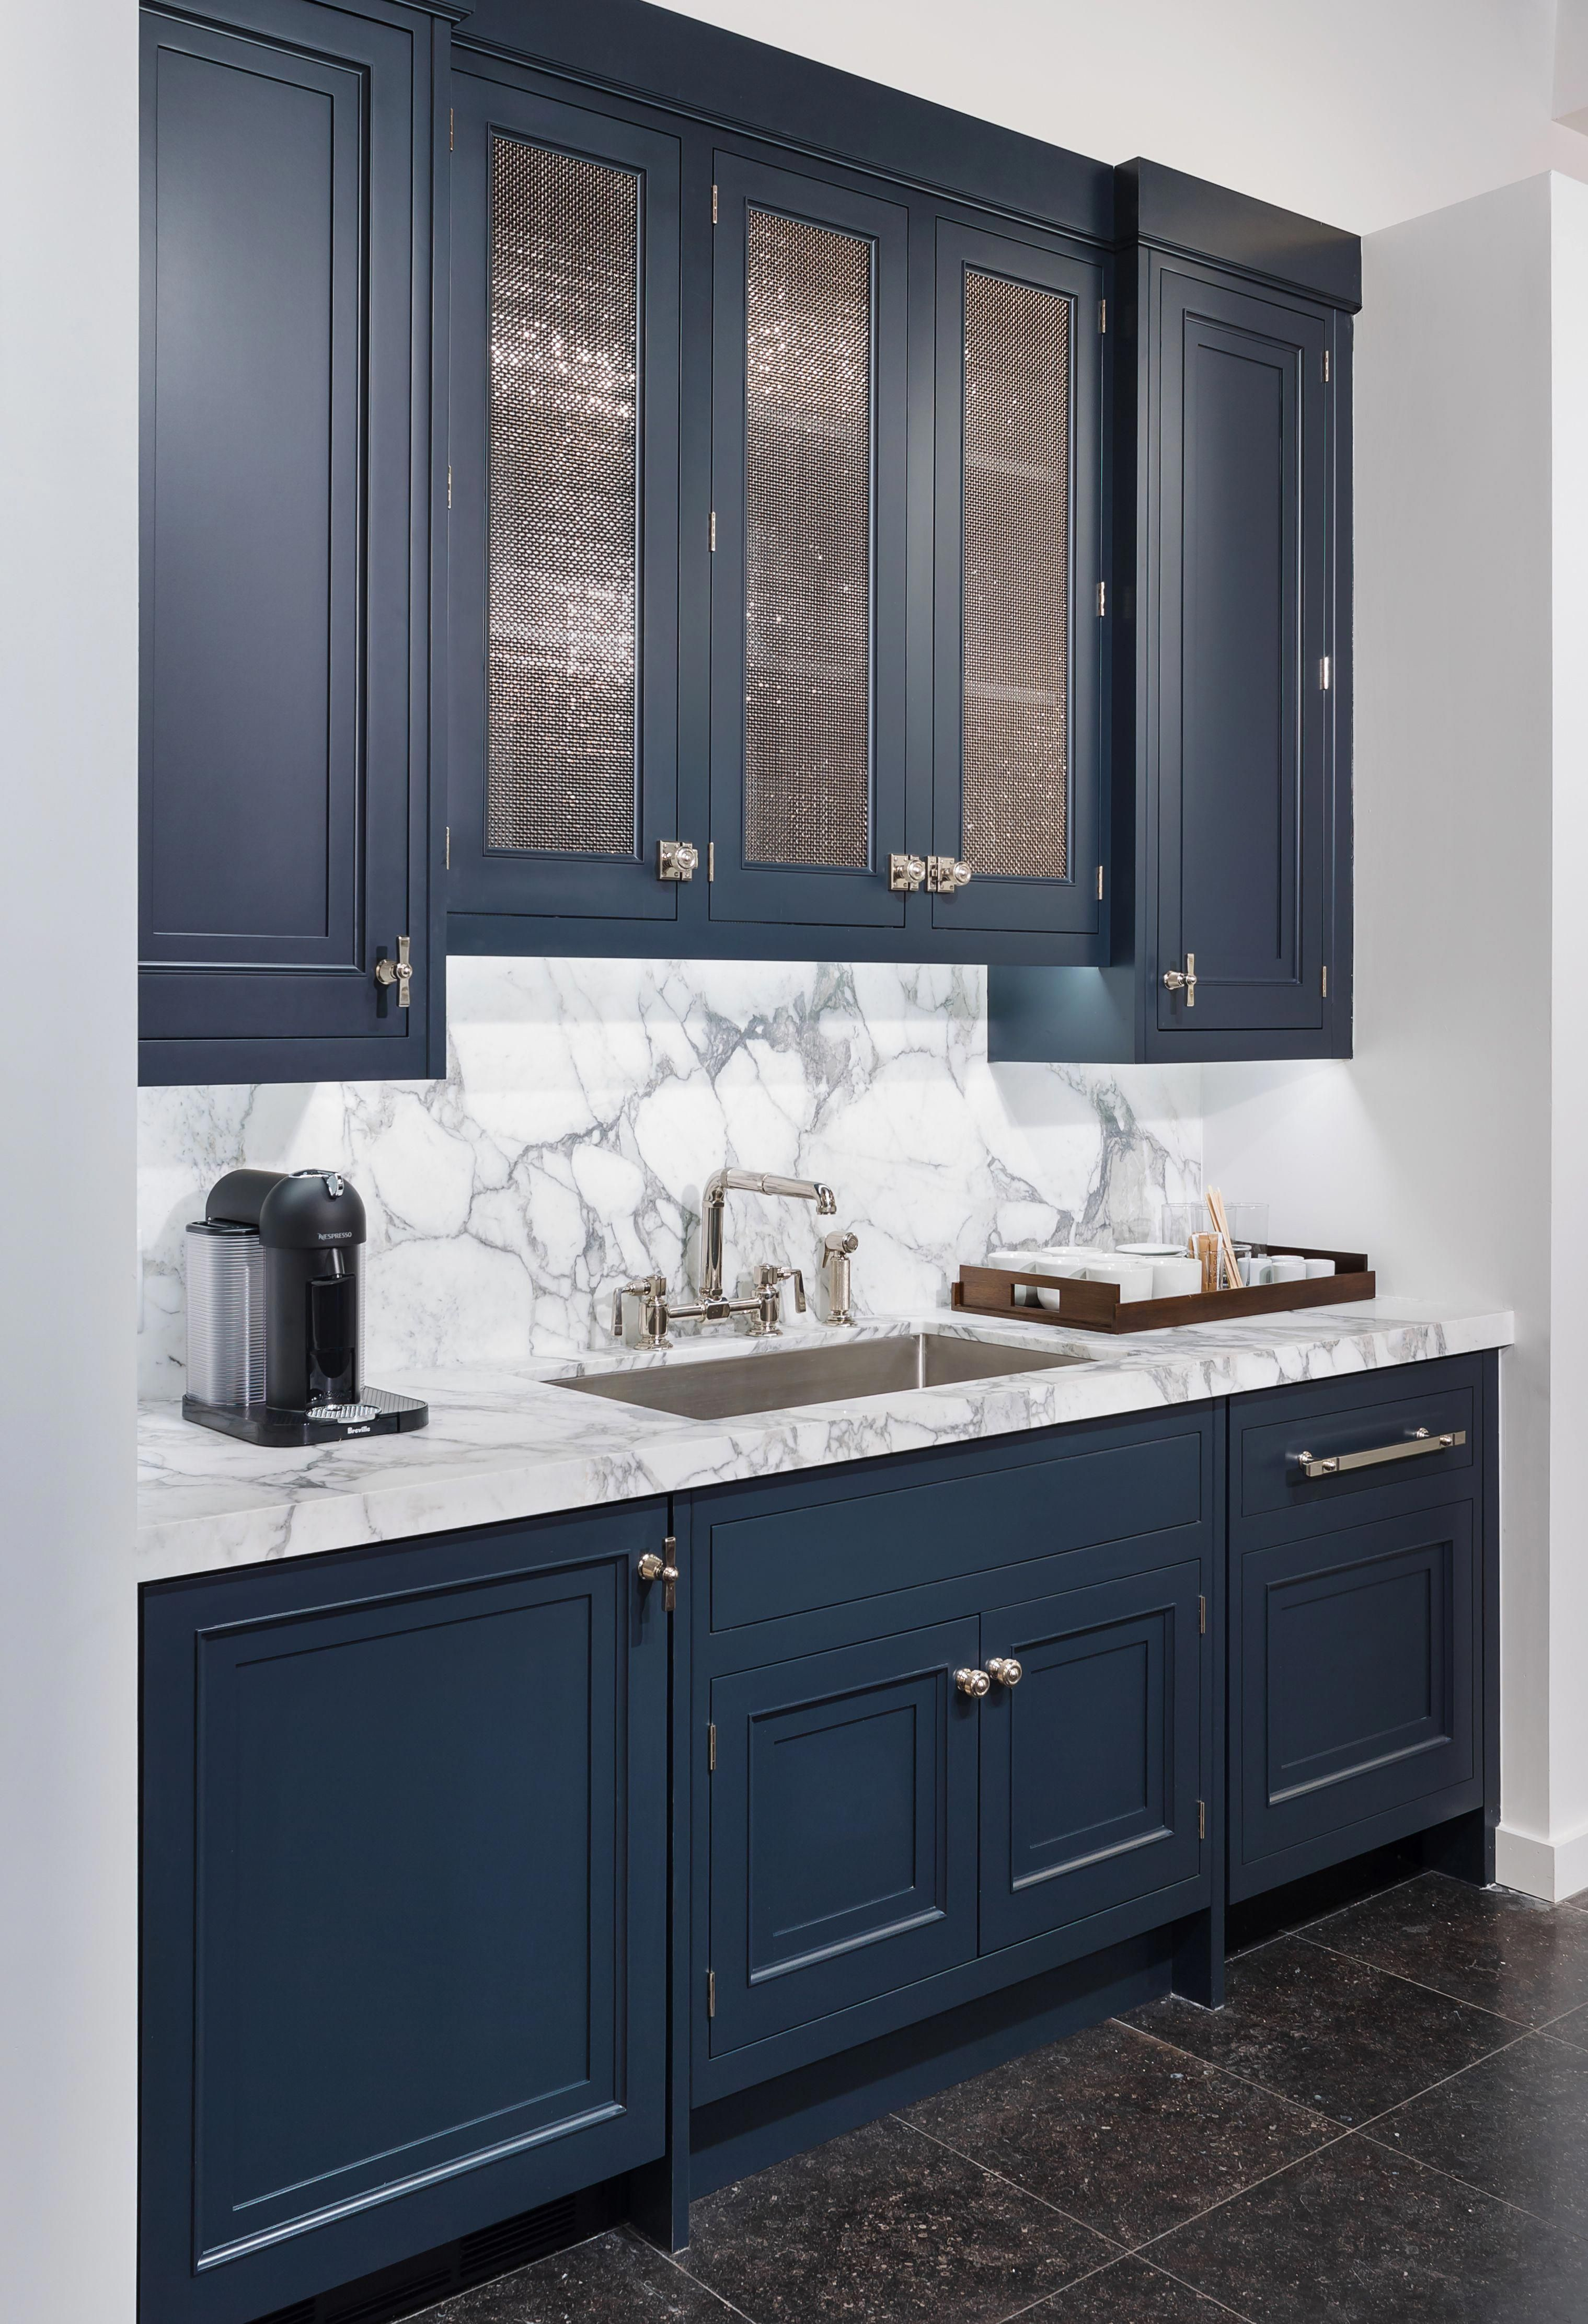 A One Stone Slab Statement Using White Marble Stone Slab And Backsplash From Our Keystone Family P In 2020 Blue Kitchen Cabinets Kitchen Cabinet Design Kitchen Faucet